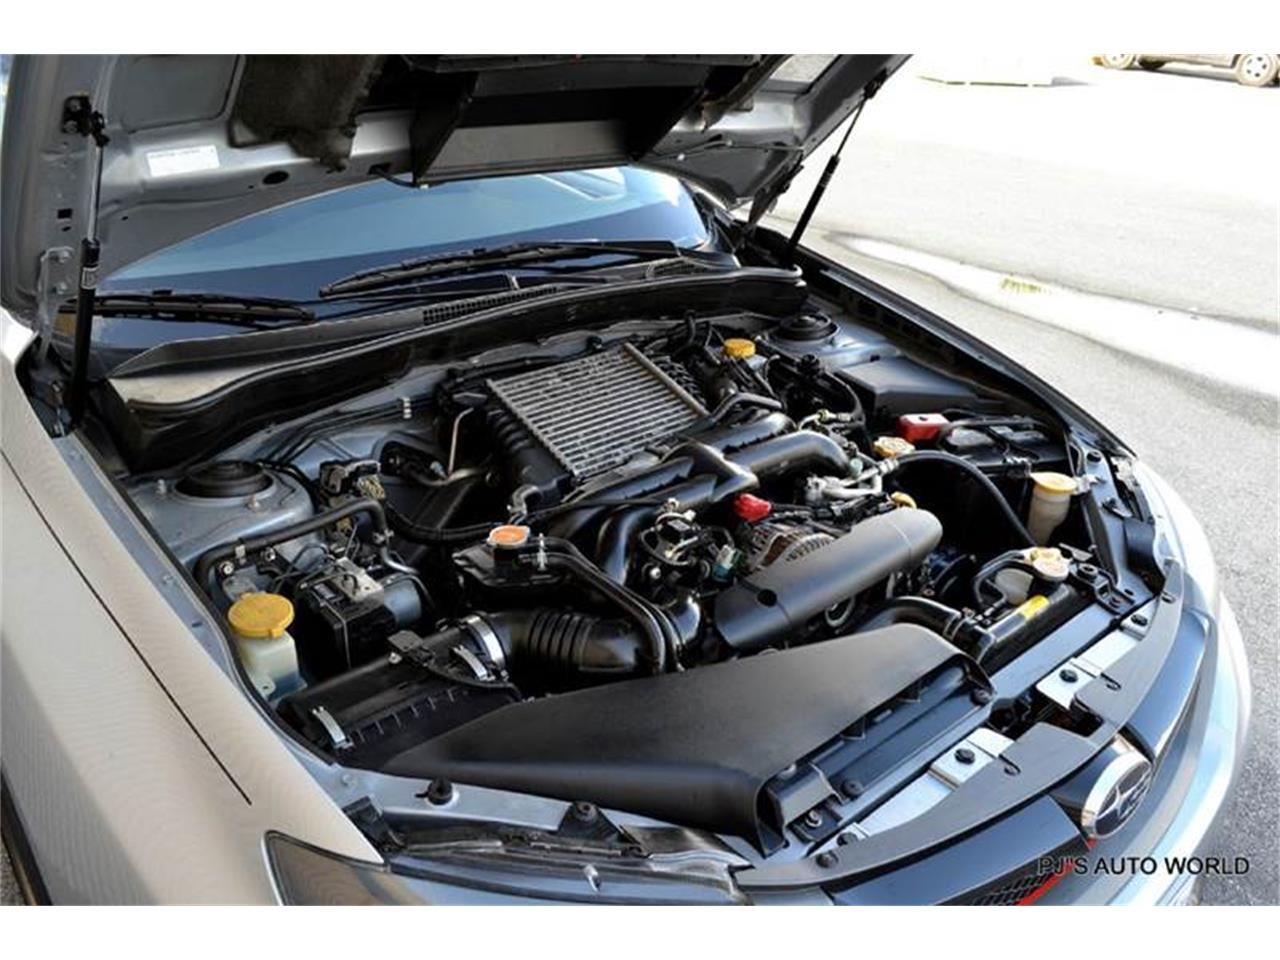 Large Picture of '13 Impreza located in Florida - $19,900.00 - J6WM